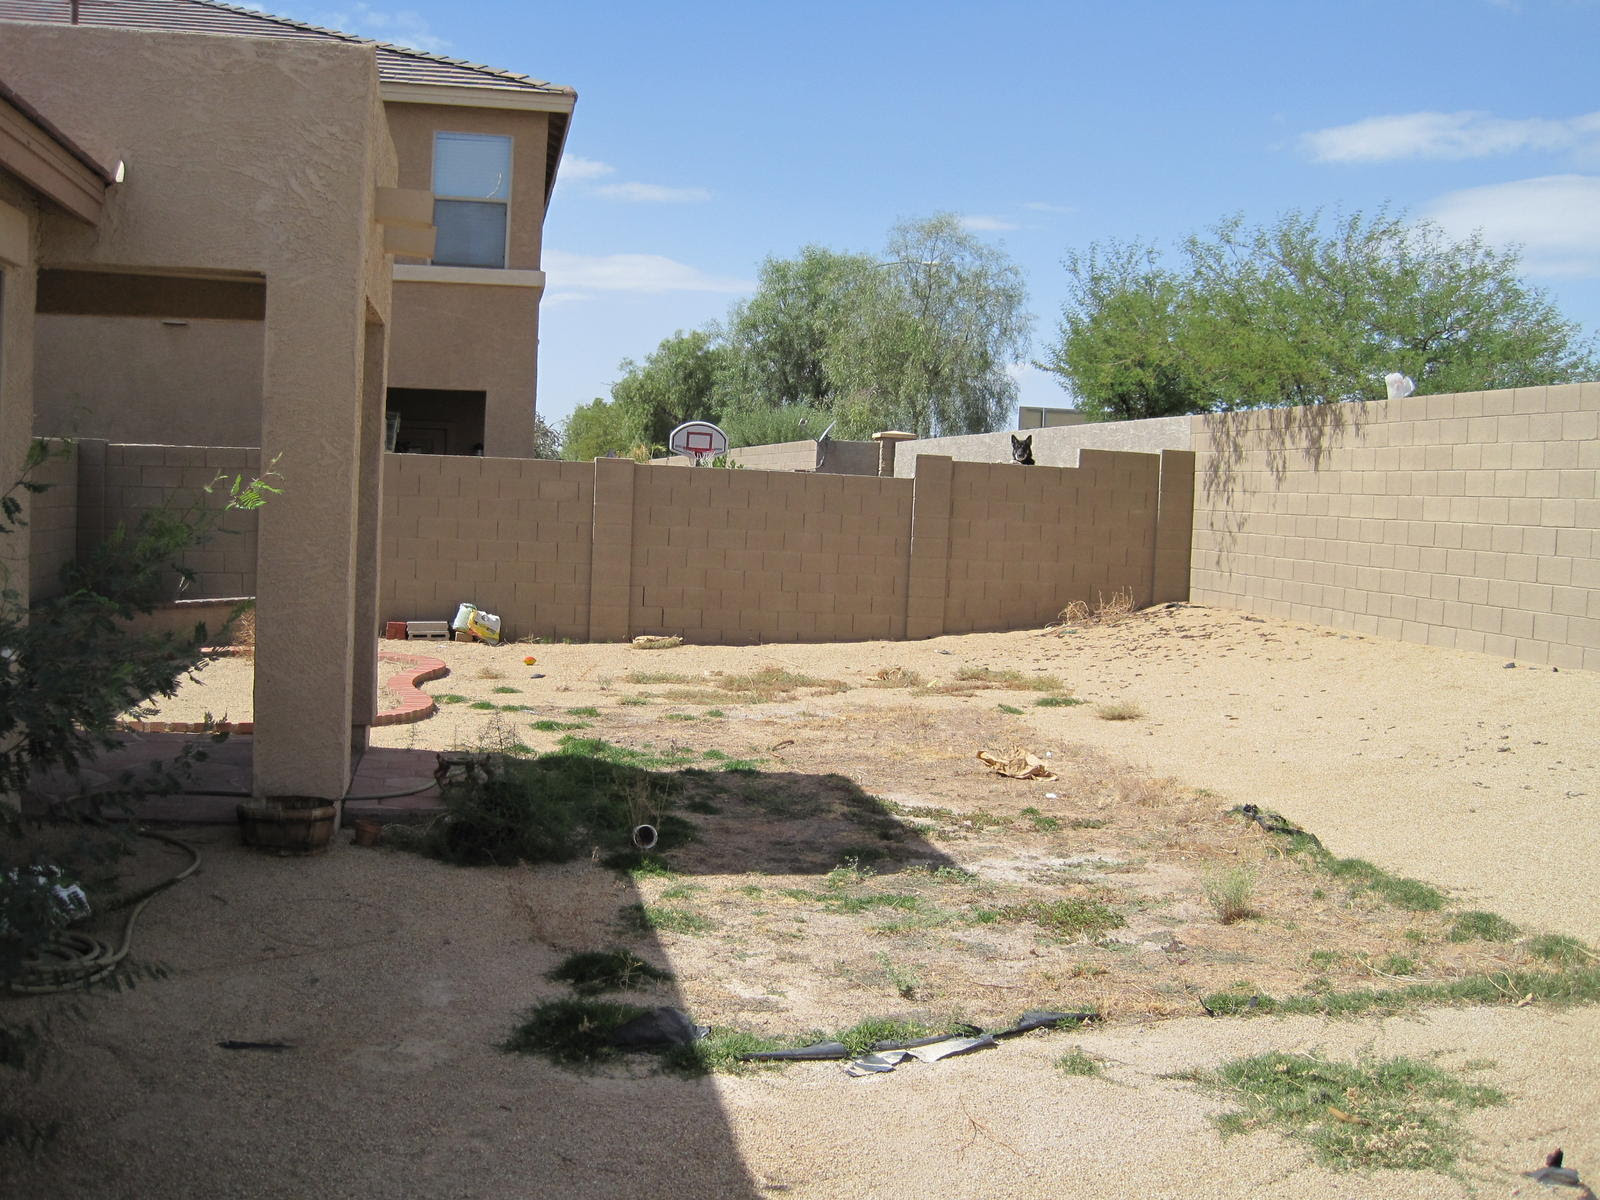 Whats Would Be The Cheapest Way To Landscape This Yard Rental New